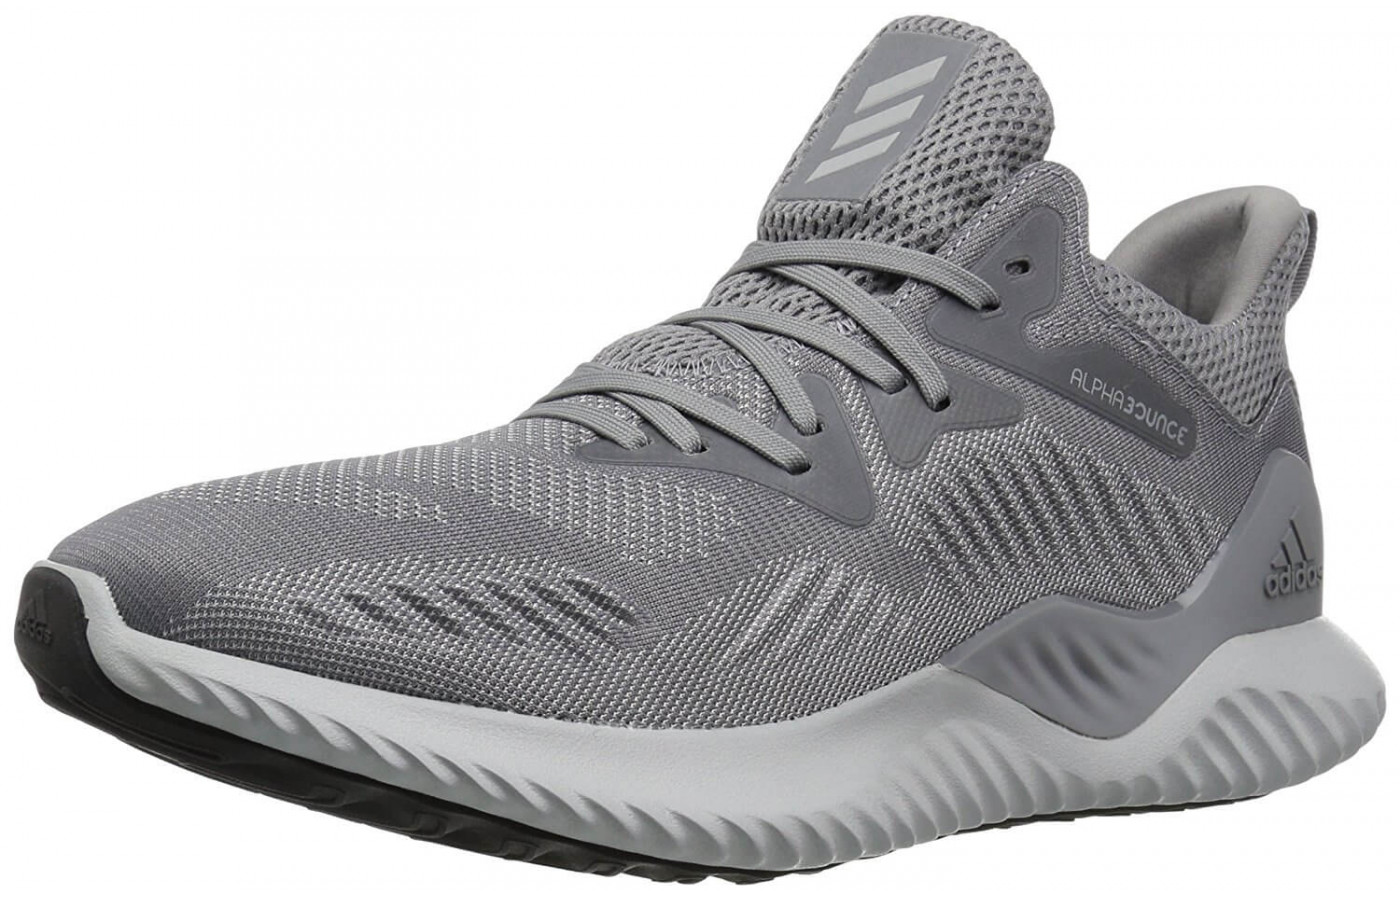 47945cd95 Adidas Alphabounce Beyond - To Buy or Not in May 2019